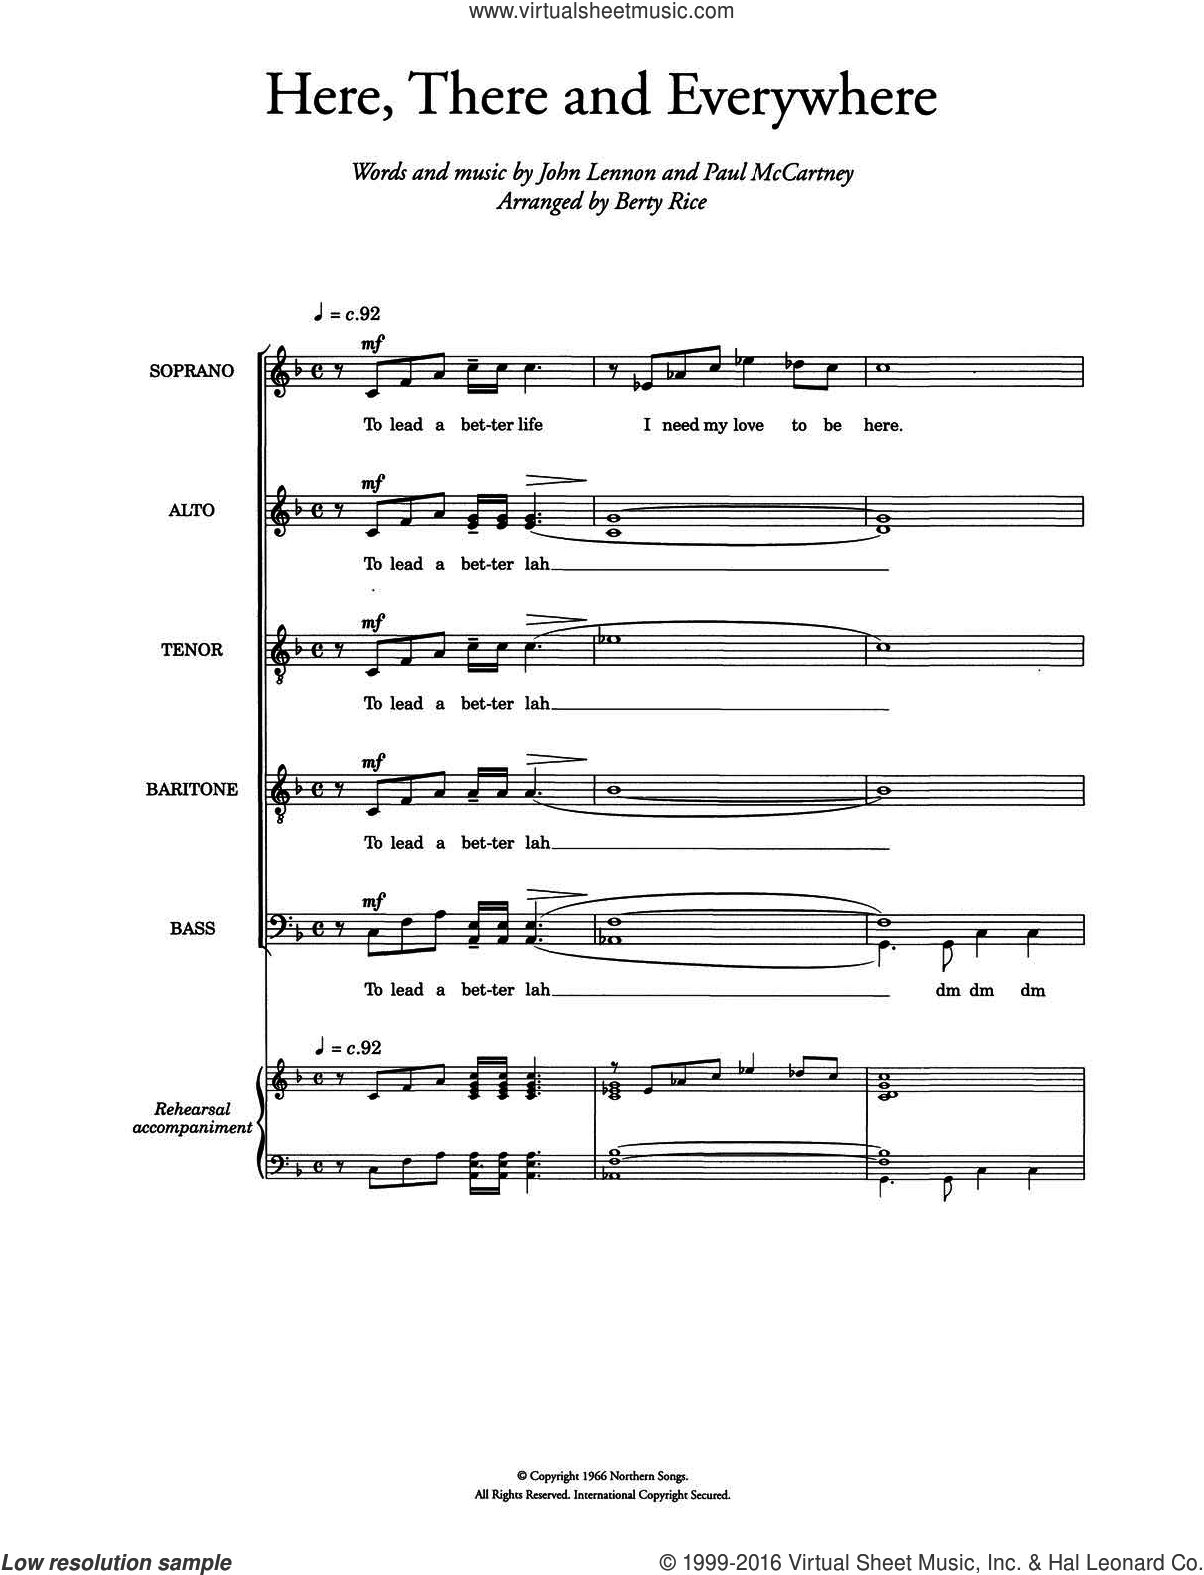 Here, There And Everywhere (arr. Berty Rice) sheet music for voice, piano or guitar by Paul McCartney, The Beatles and John Lennon. Score Image Preview.